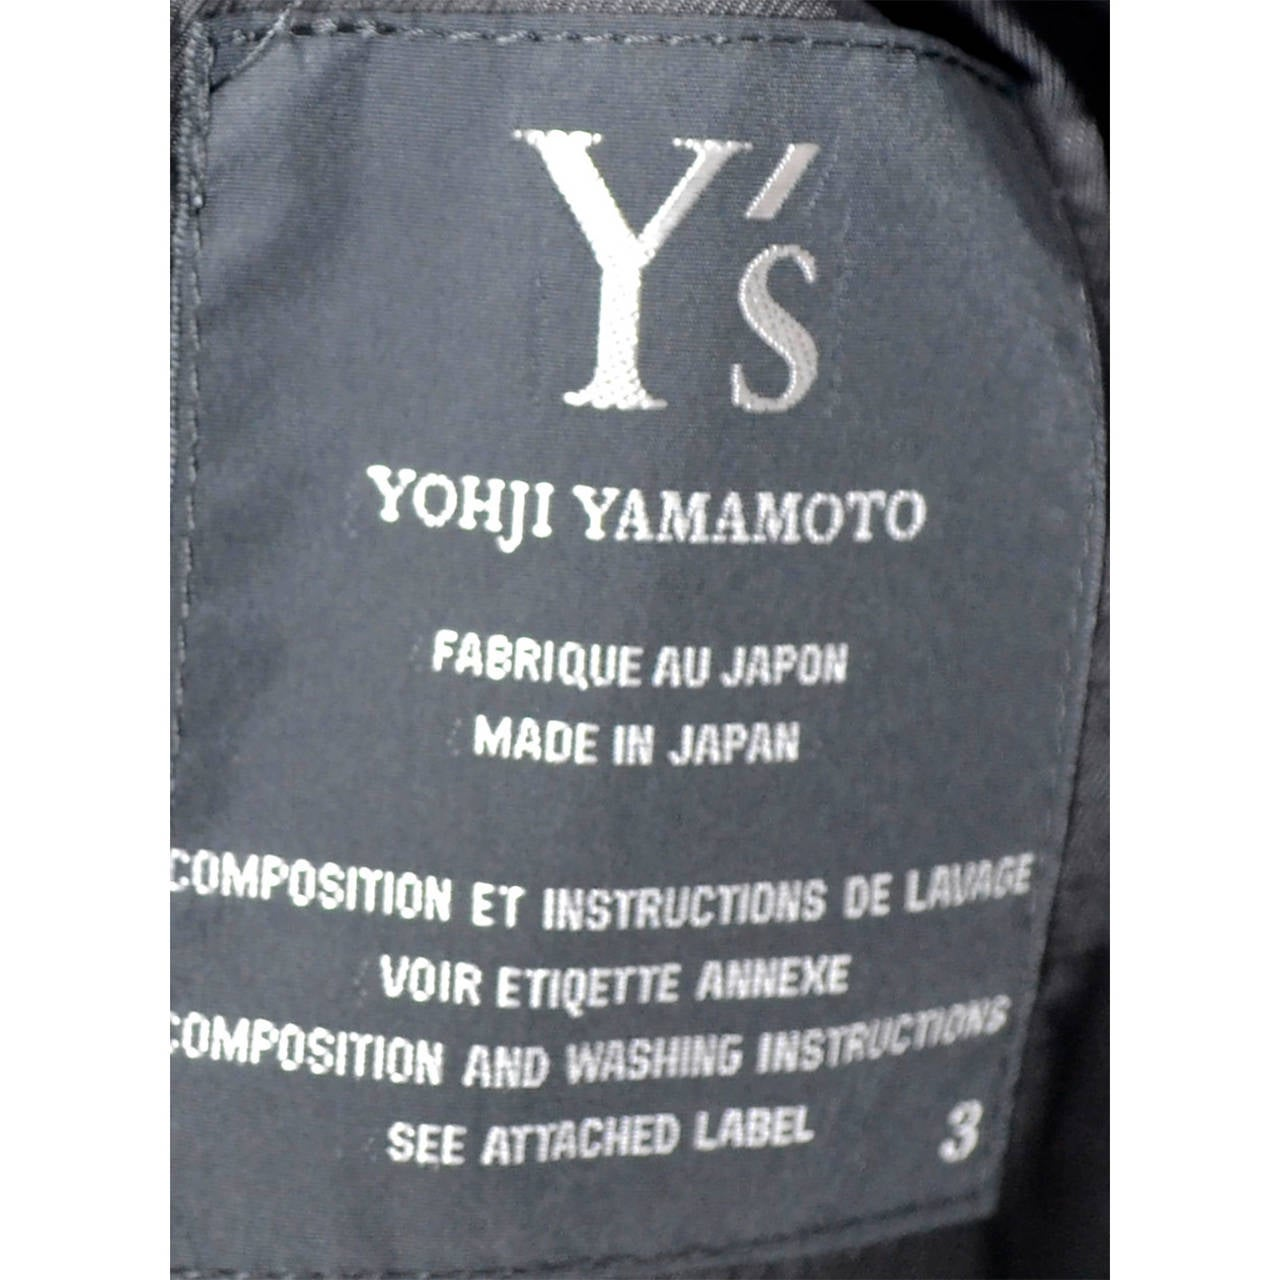 Yohji Yamamoto Ys Vintage Coat Black Wool Cocoon Japan In Excellent Condition For Sale In Portland, OR